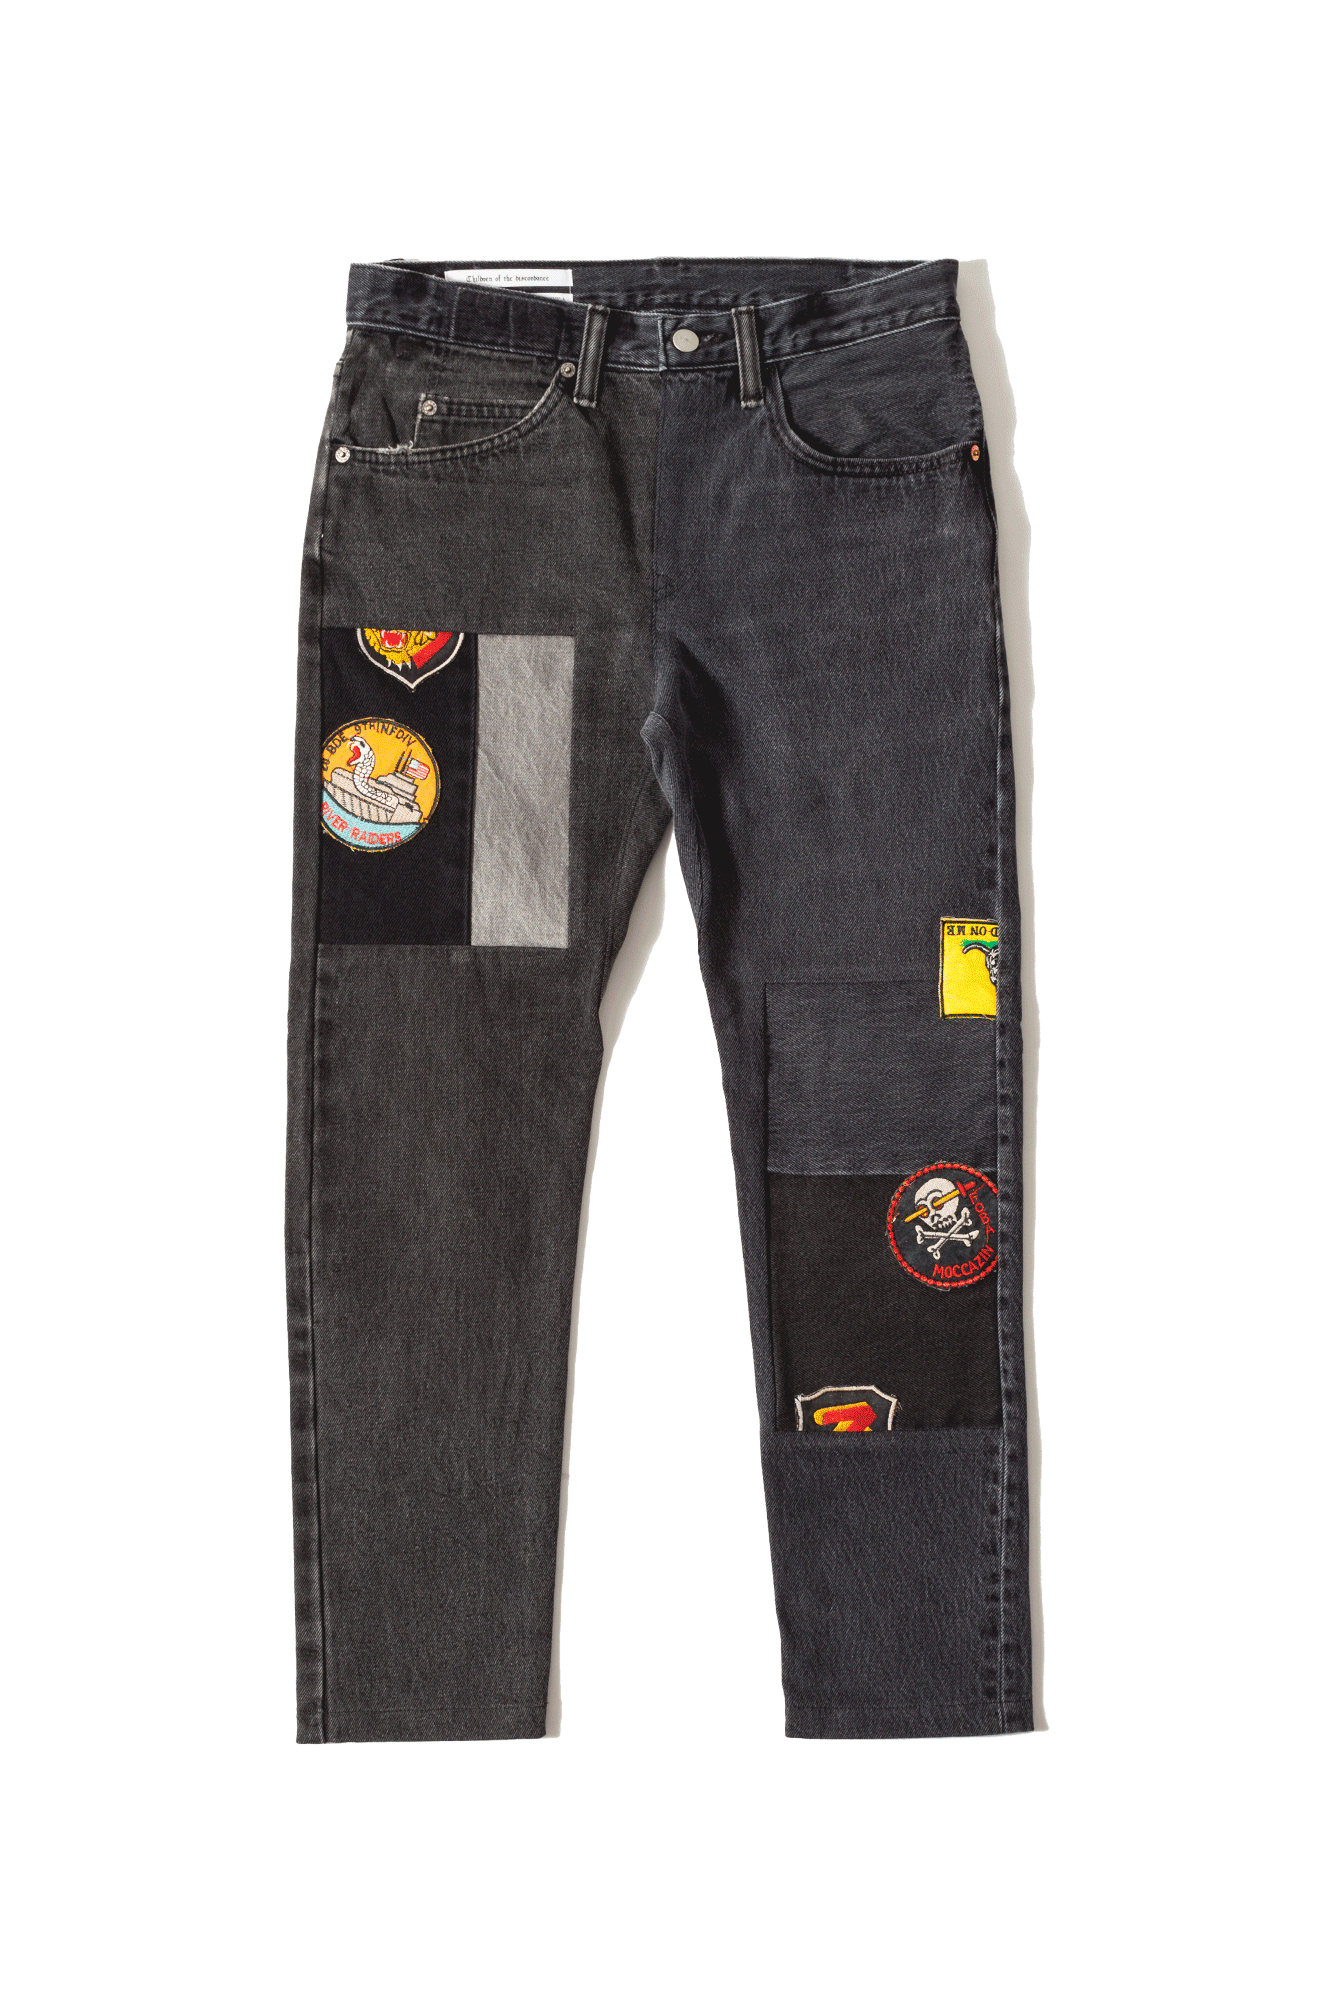 Children Of The Discordance Denim Pants Vintage Fabric Black COTDNY#PT301#BLACK#0 - One Block Down